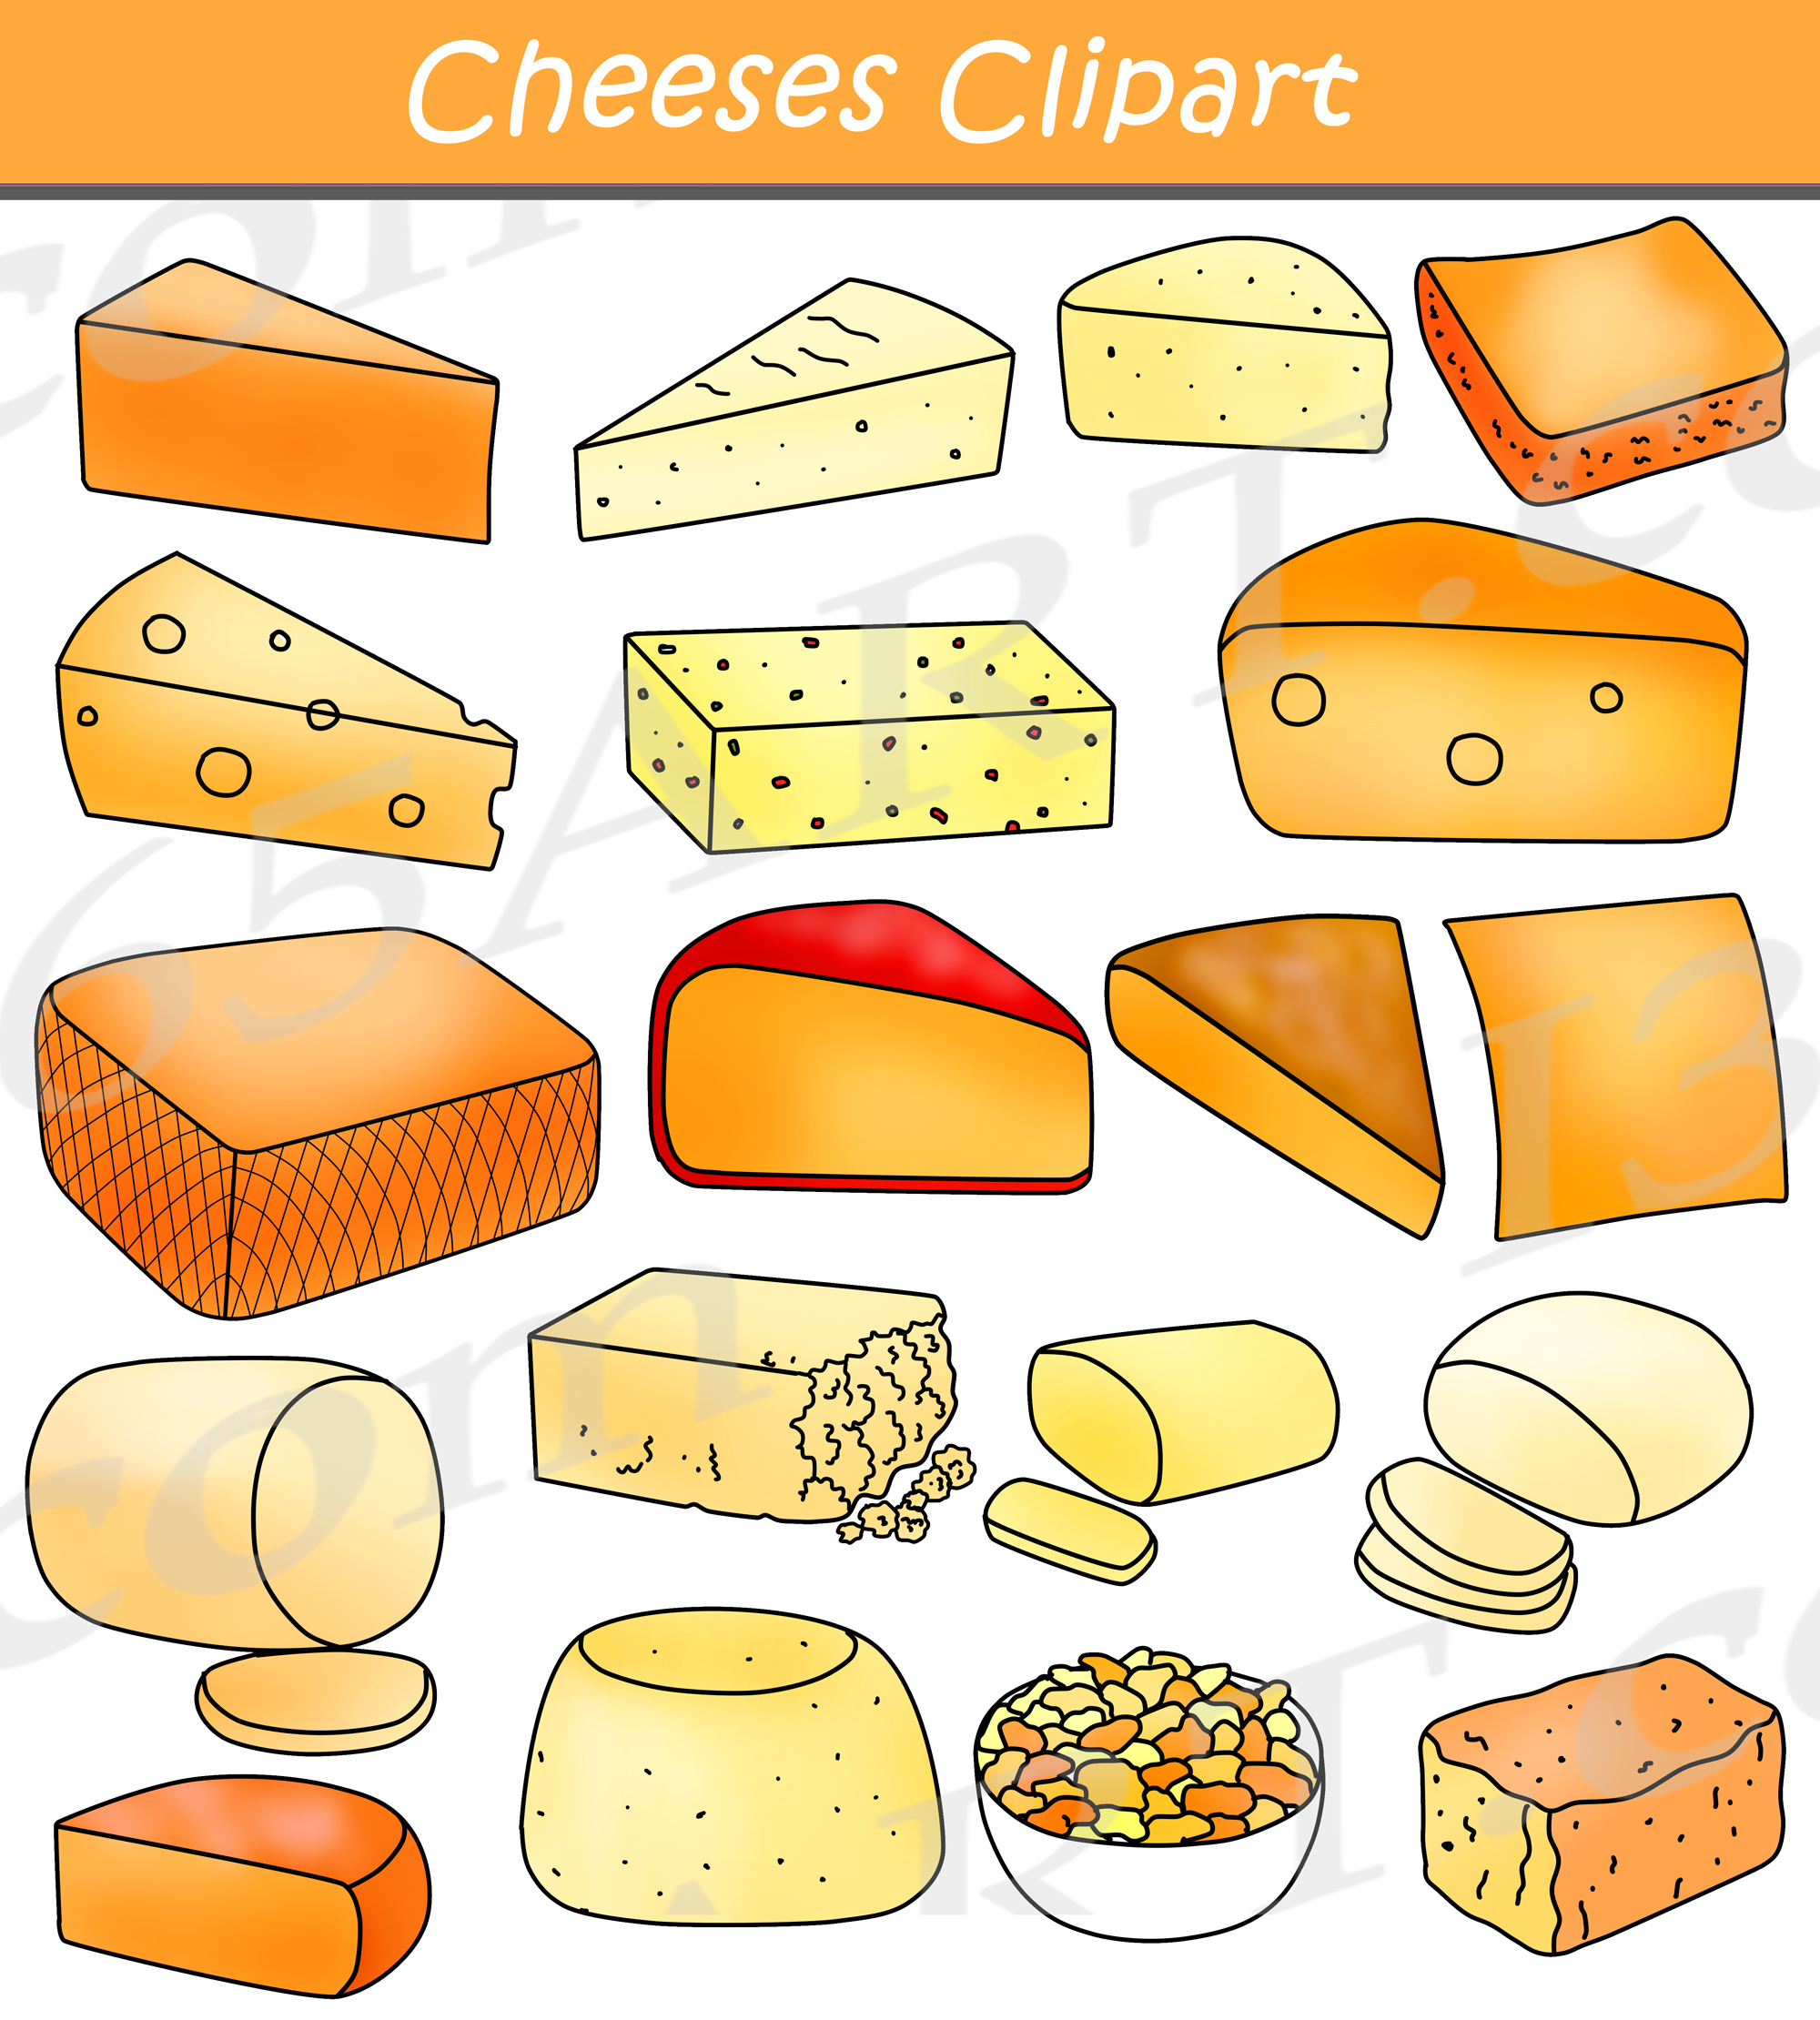 Cheese clipart graphic black and white Cheese Clipart Graphics Commercial Download graphic black and white